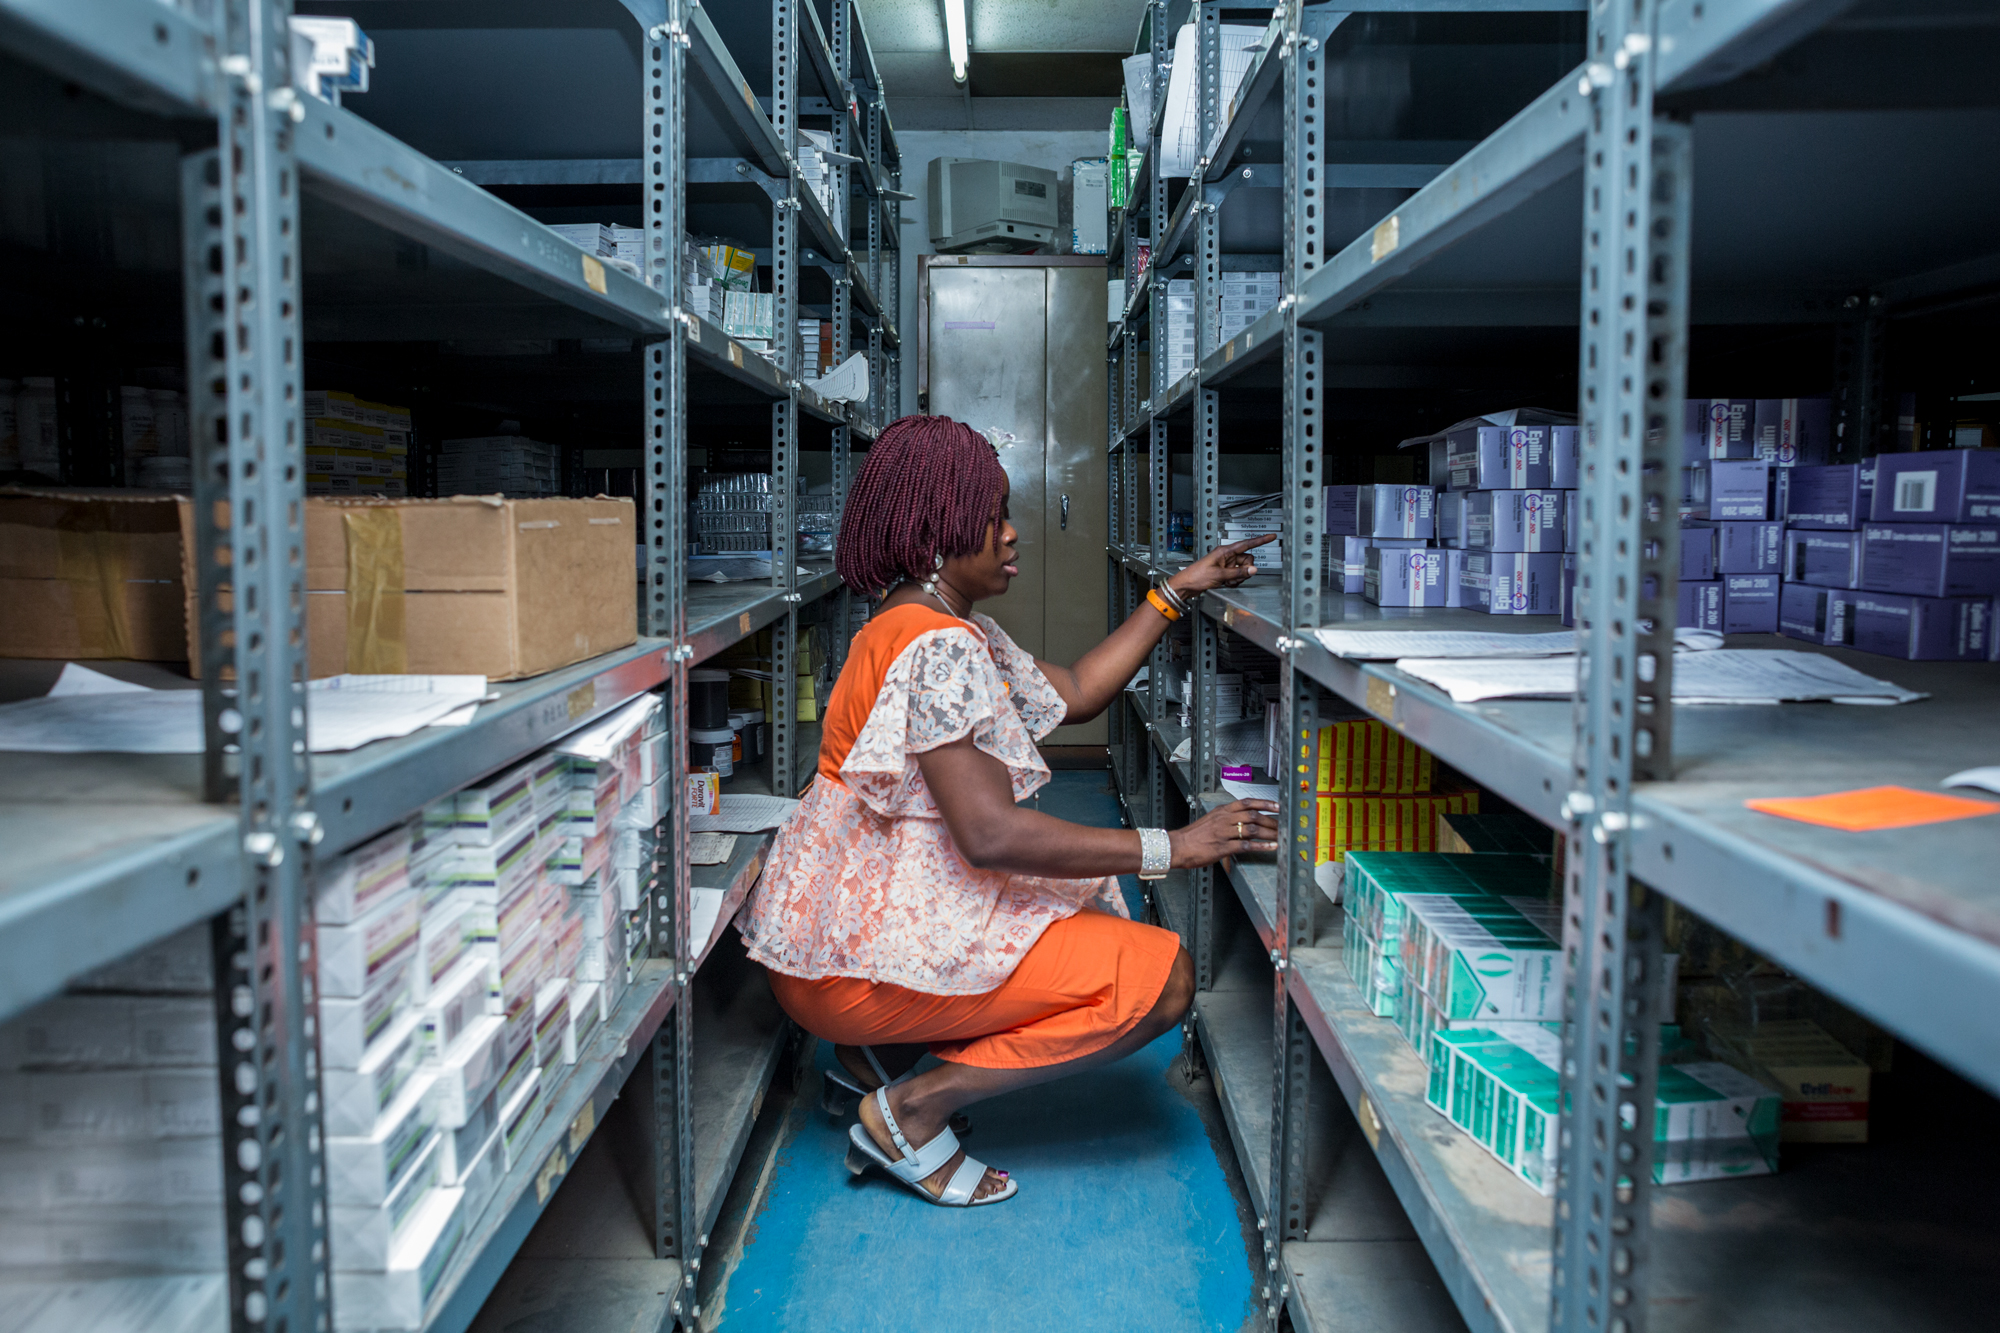 Pharmacist Adebisi arranges some drugs in the pharmacy store as she takes inventory. University College Hospital, Ibadan. Etinosa Yvonne © Wellcome Trust WOMAN_TRIAL_